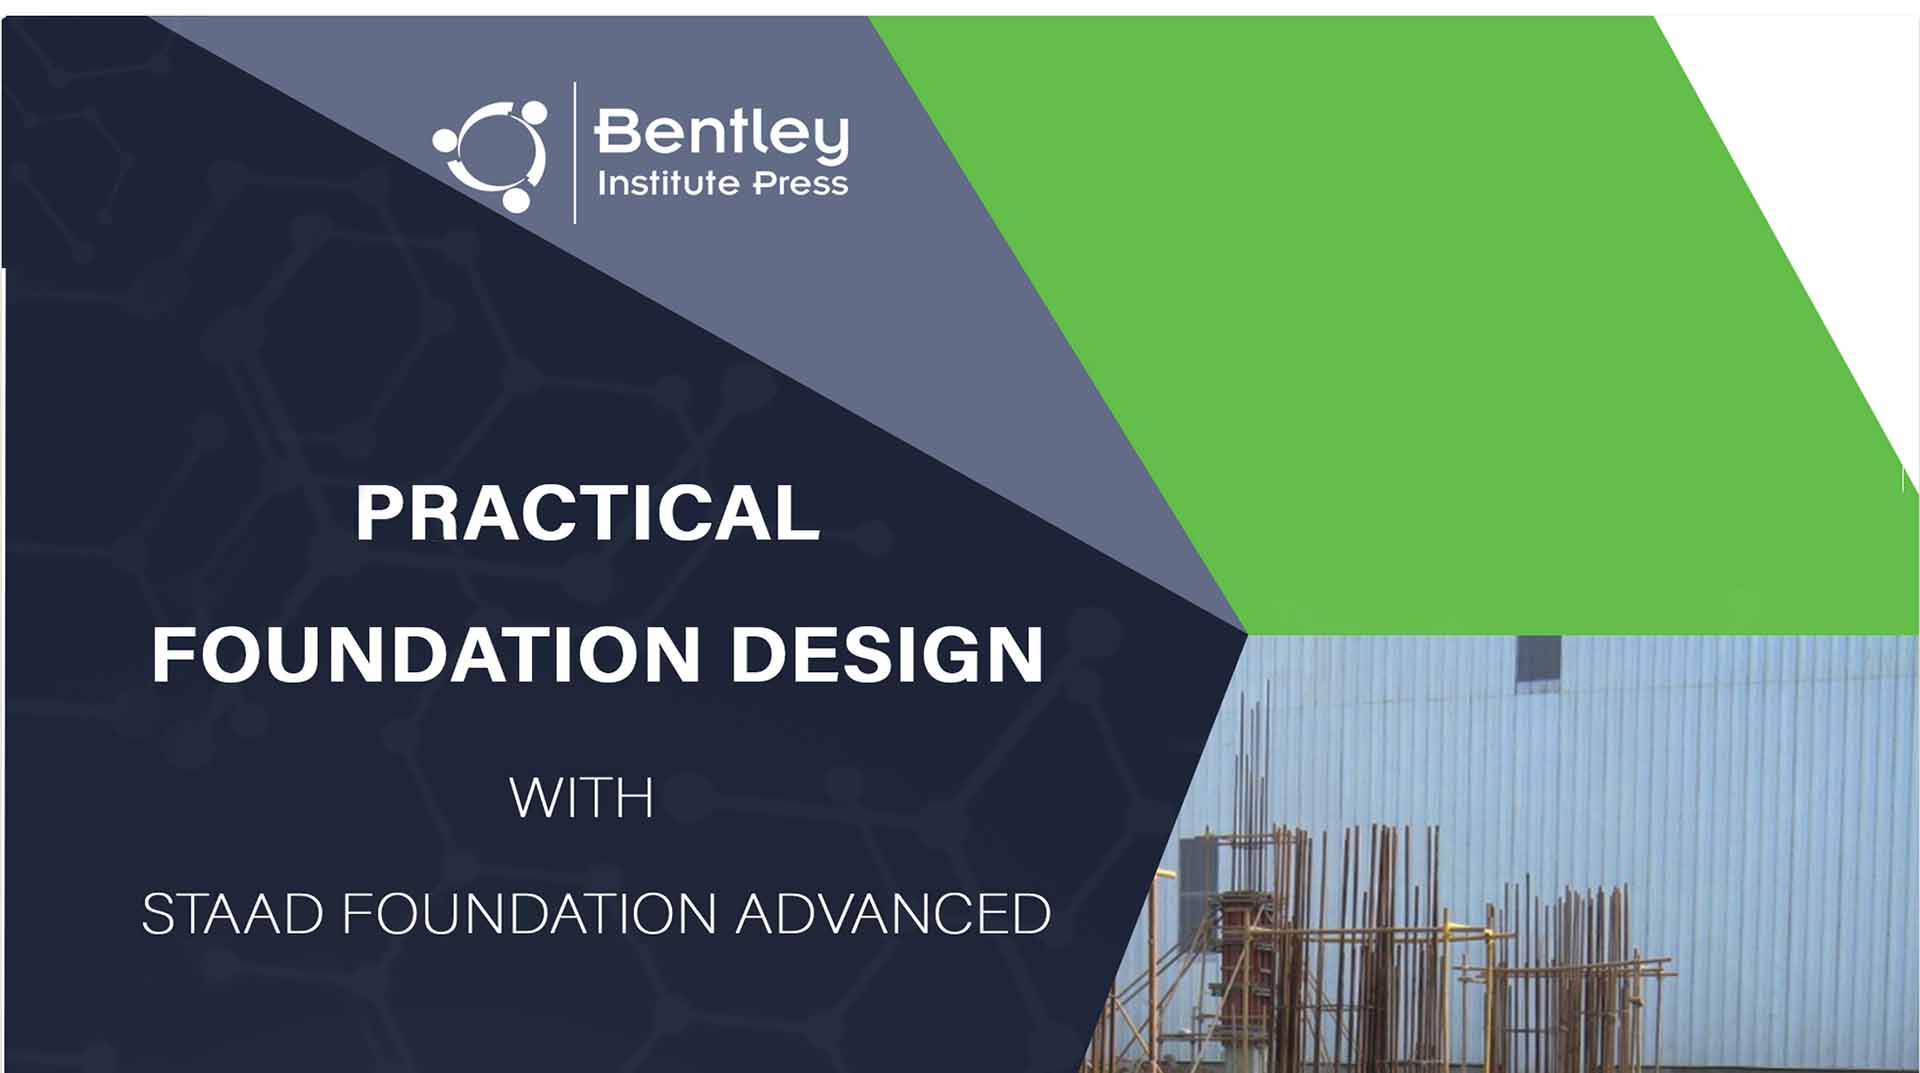 Bentley Institute Press Announces Availability of Practical